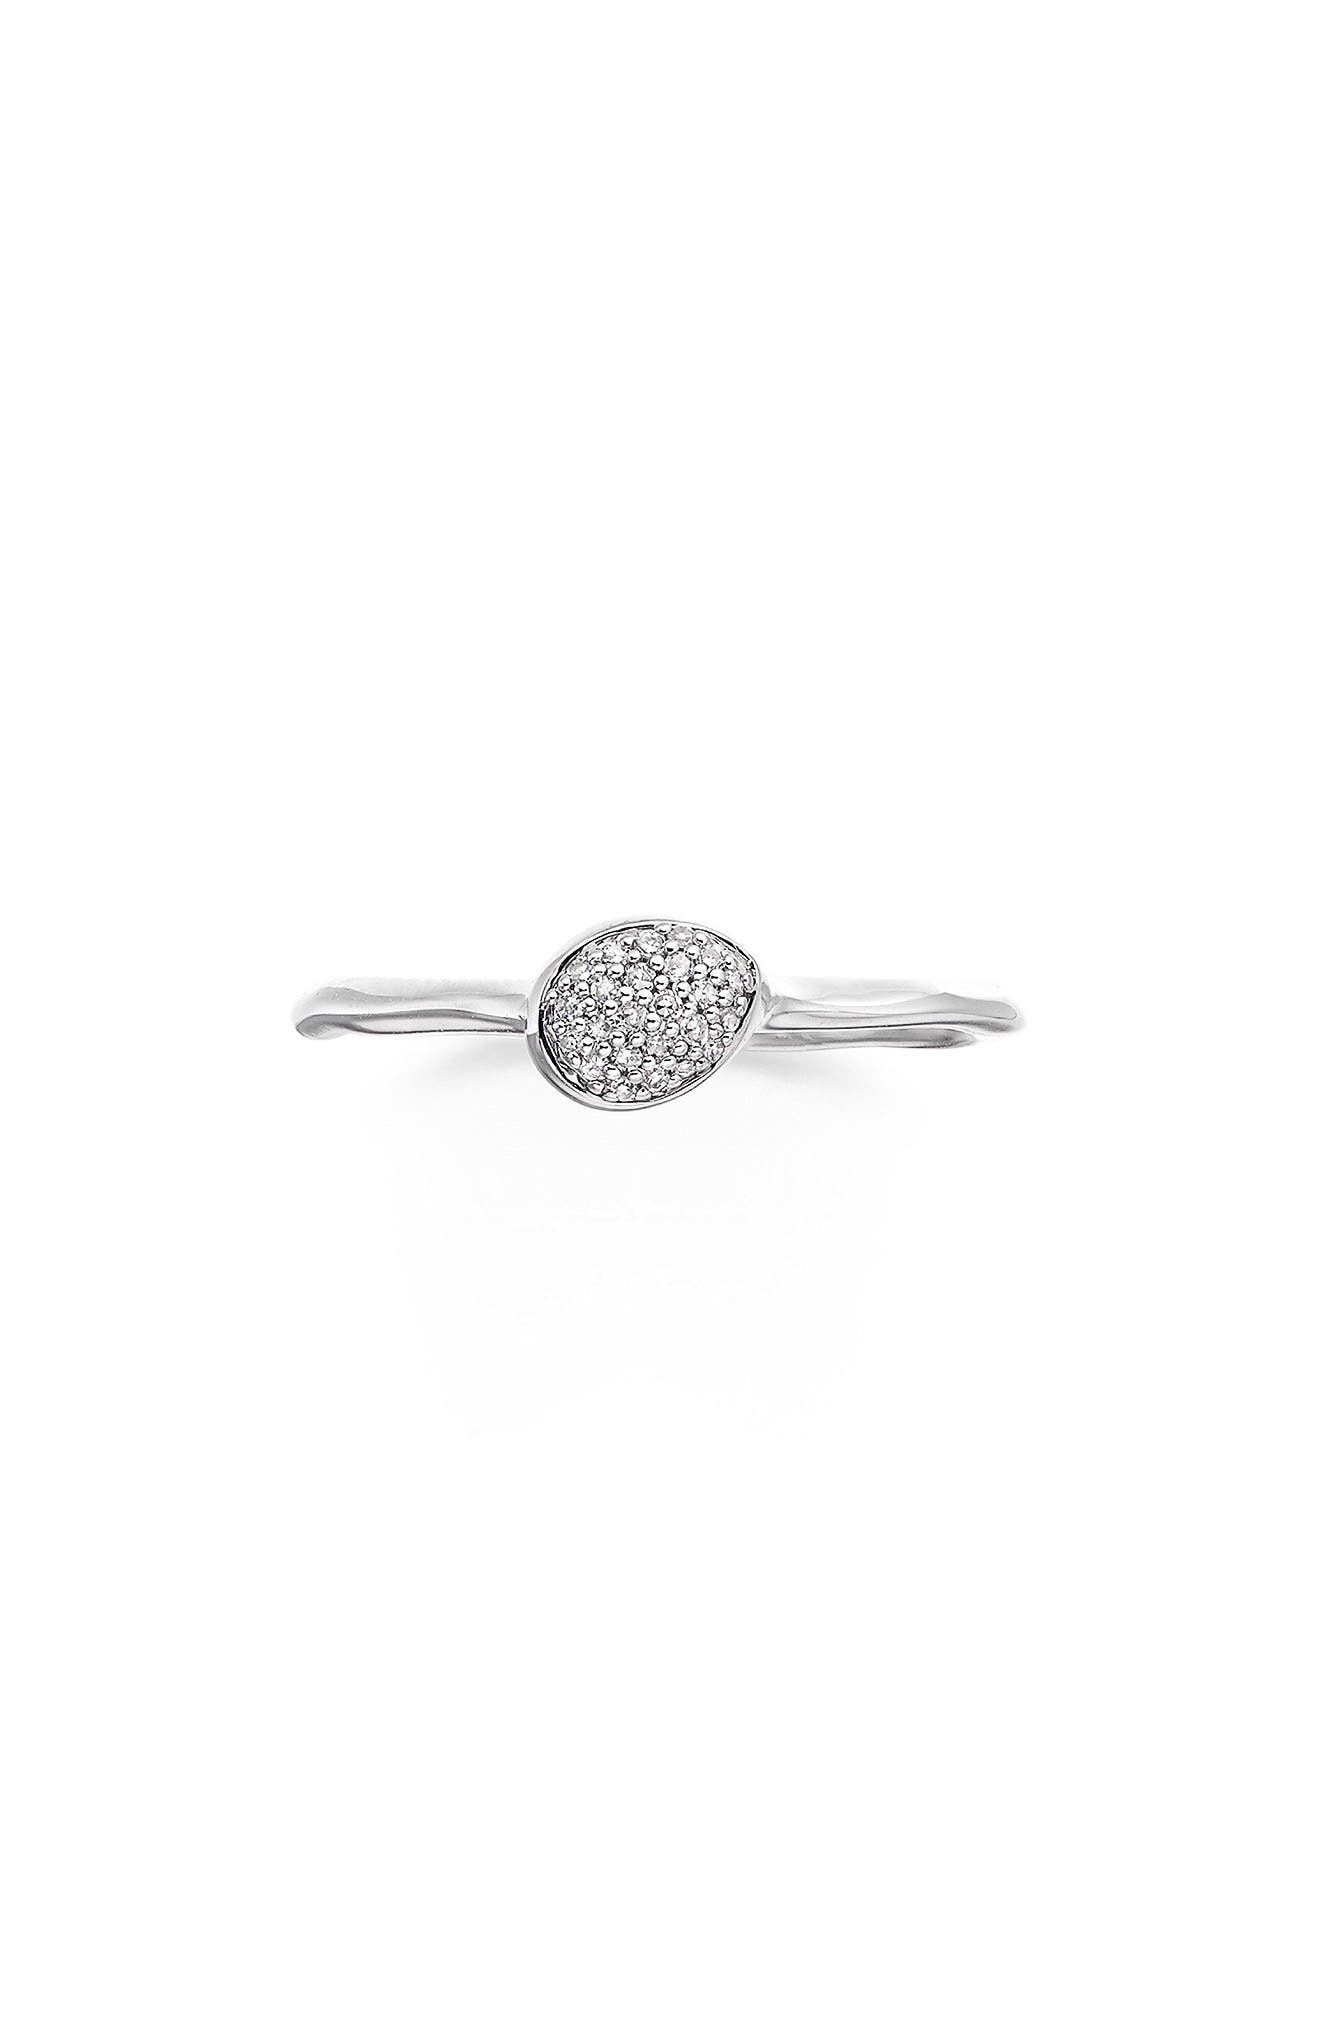 Siren Small Pavé Diamond Stacking Ring,                         Main,                         color, Silver/ Diamond